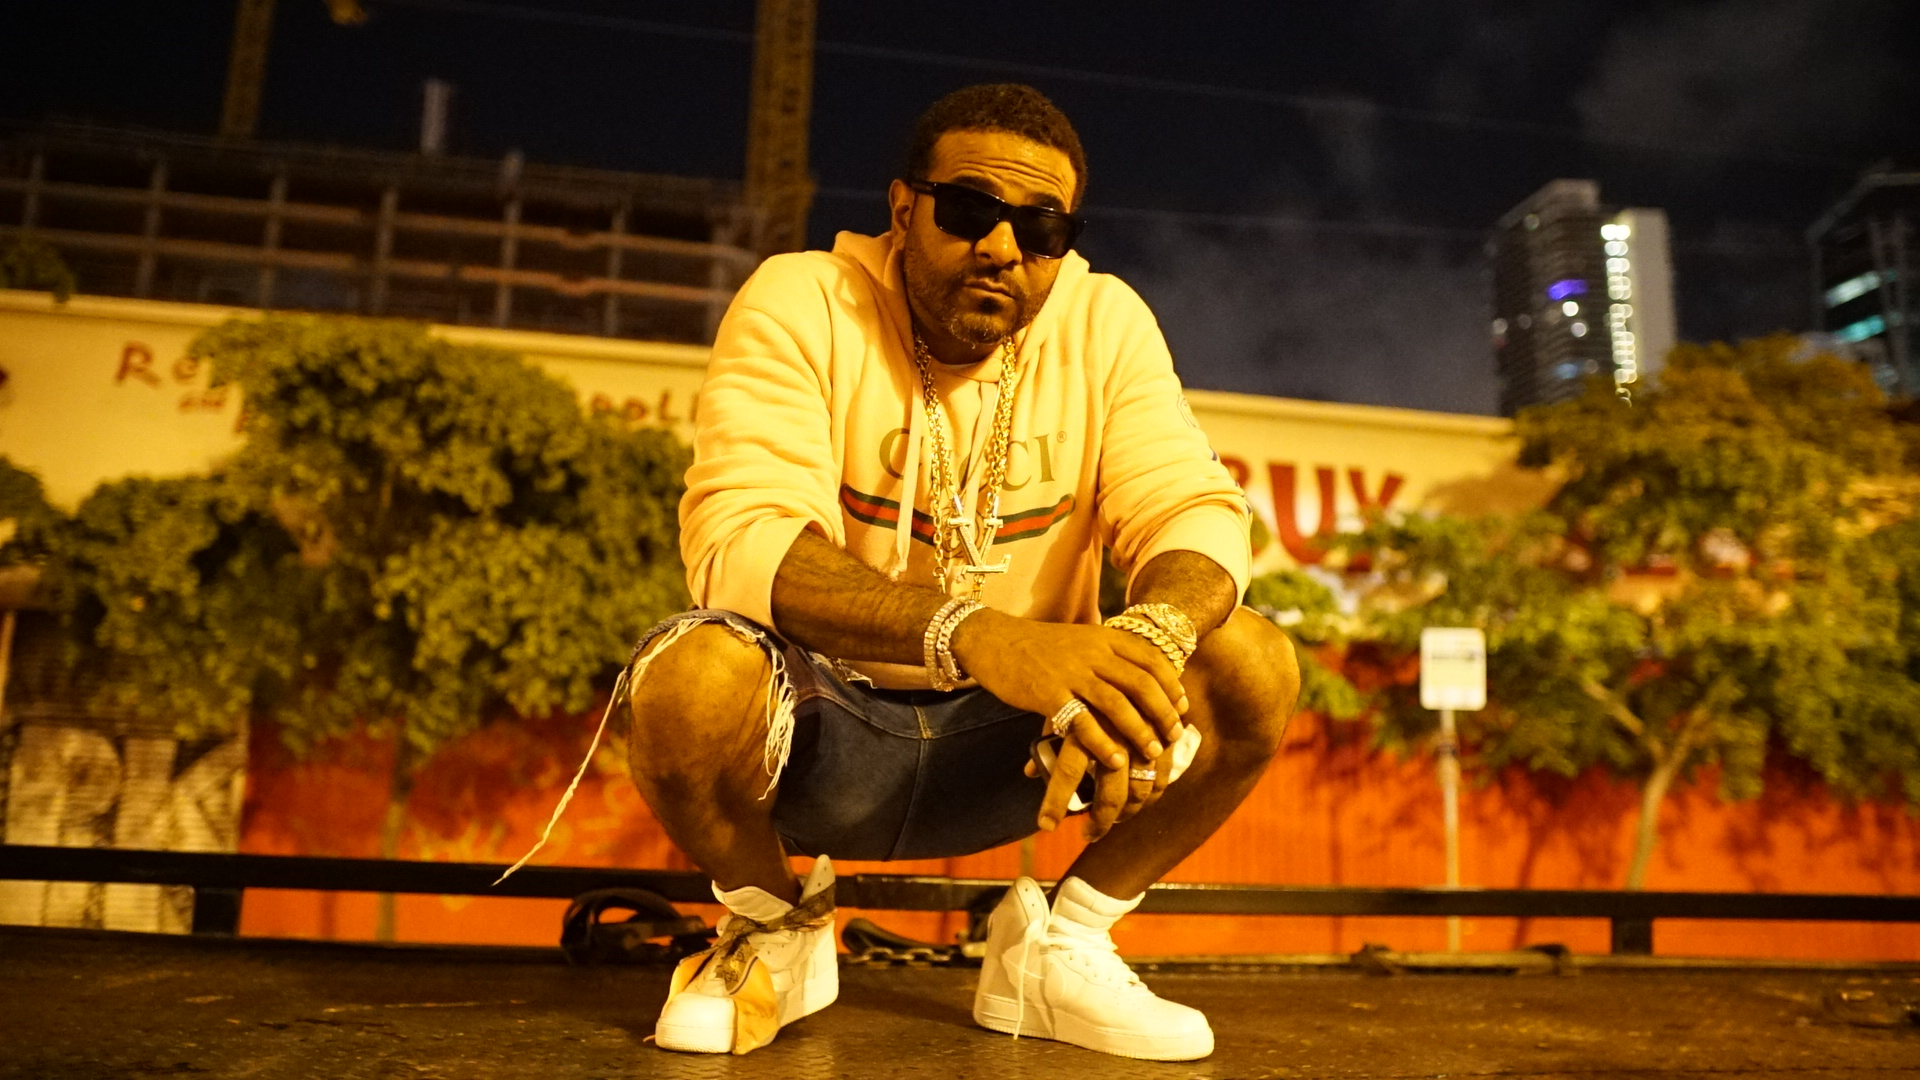 Jim Jones - Joseph Guillermo Jones II (born July 15, 1976),[1] better known by his stage name Jim Jones (formerly Jimmy Jones), is an American rapper and music video director. Jones, an original member of hip hop collective The Diplomats (also known as Dipset), is also the co-CEO of Diplomat Records, alongside longtime friend and fellow Harlem-bred rapper, Cam'ron.[2][3] Jones is also a noted music video director under the pseudonym CAPO, having directed videos for artists including Cam'ron, Juelz Santana, Remy Ma and State Property.In 2004, he released his solo debut album On My Way to Church. The release of his second album, Harlem: Diary of a Summer in 2005, coincided with Jones landing an executive position in A&R at E1 Music. A year later he was on his third album Hustler's P.O.M.E. (Product of My Environment)(2006), which spawned his biggest single to date,